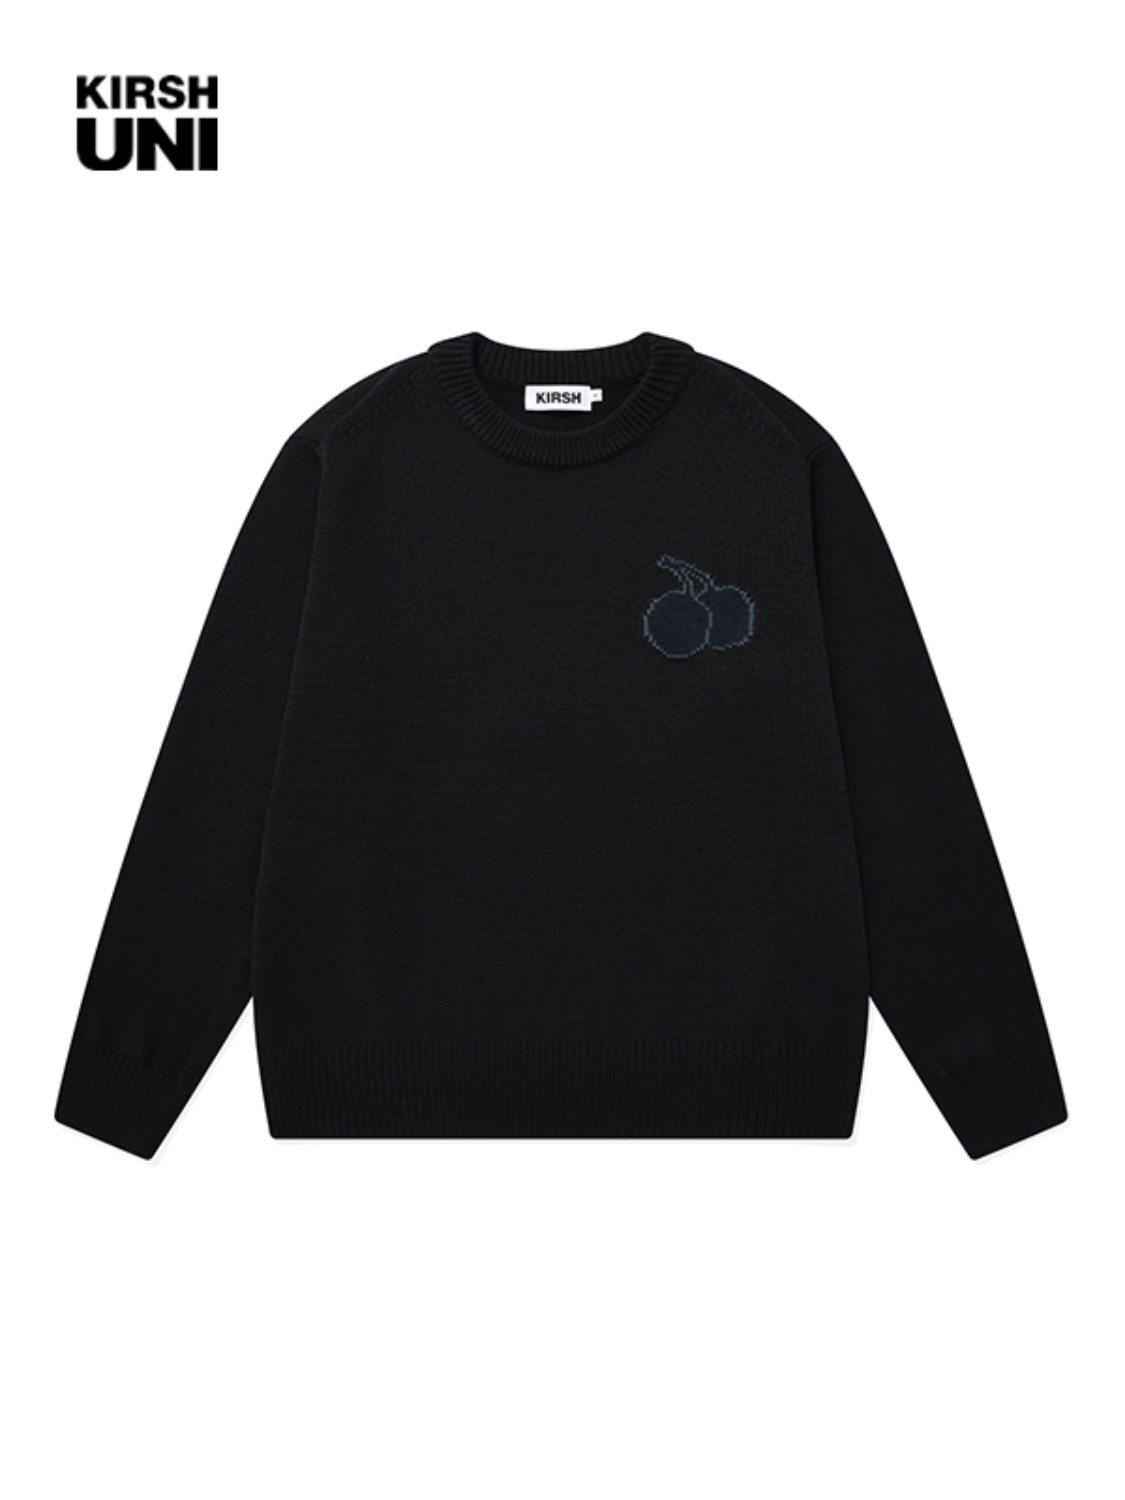 UNI TONE ON TONE MIDDLE CHERRY KNIT KS [BLACK]